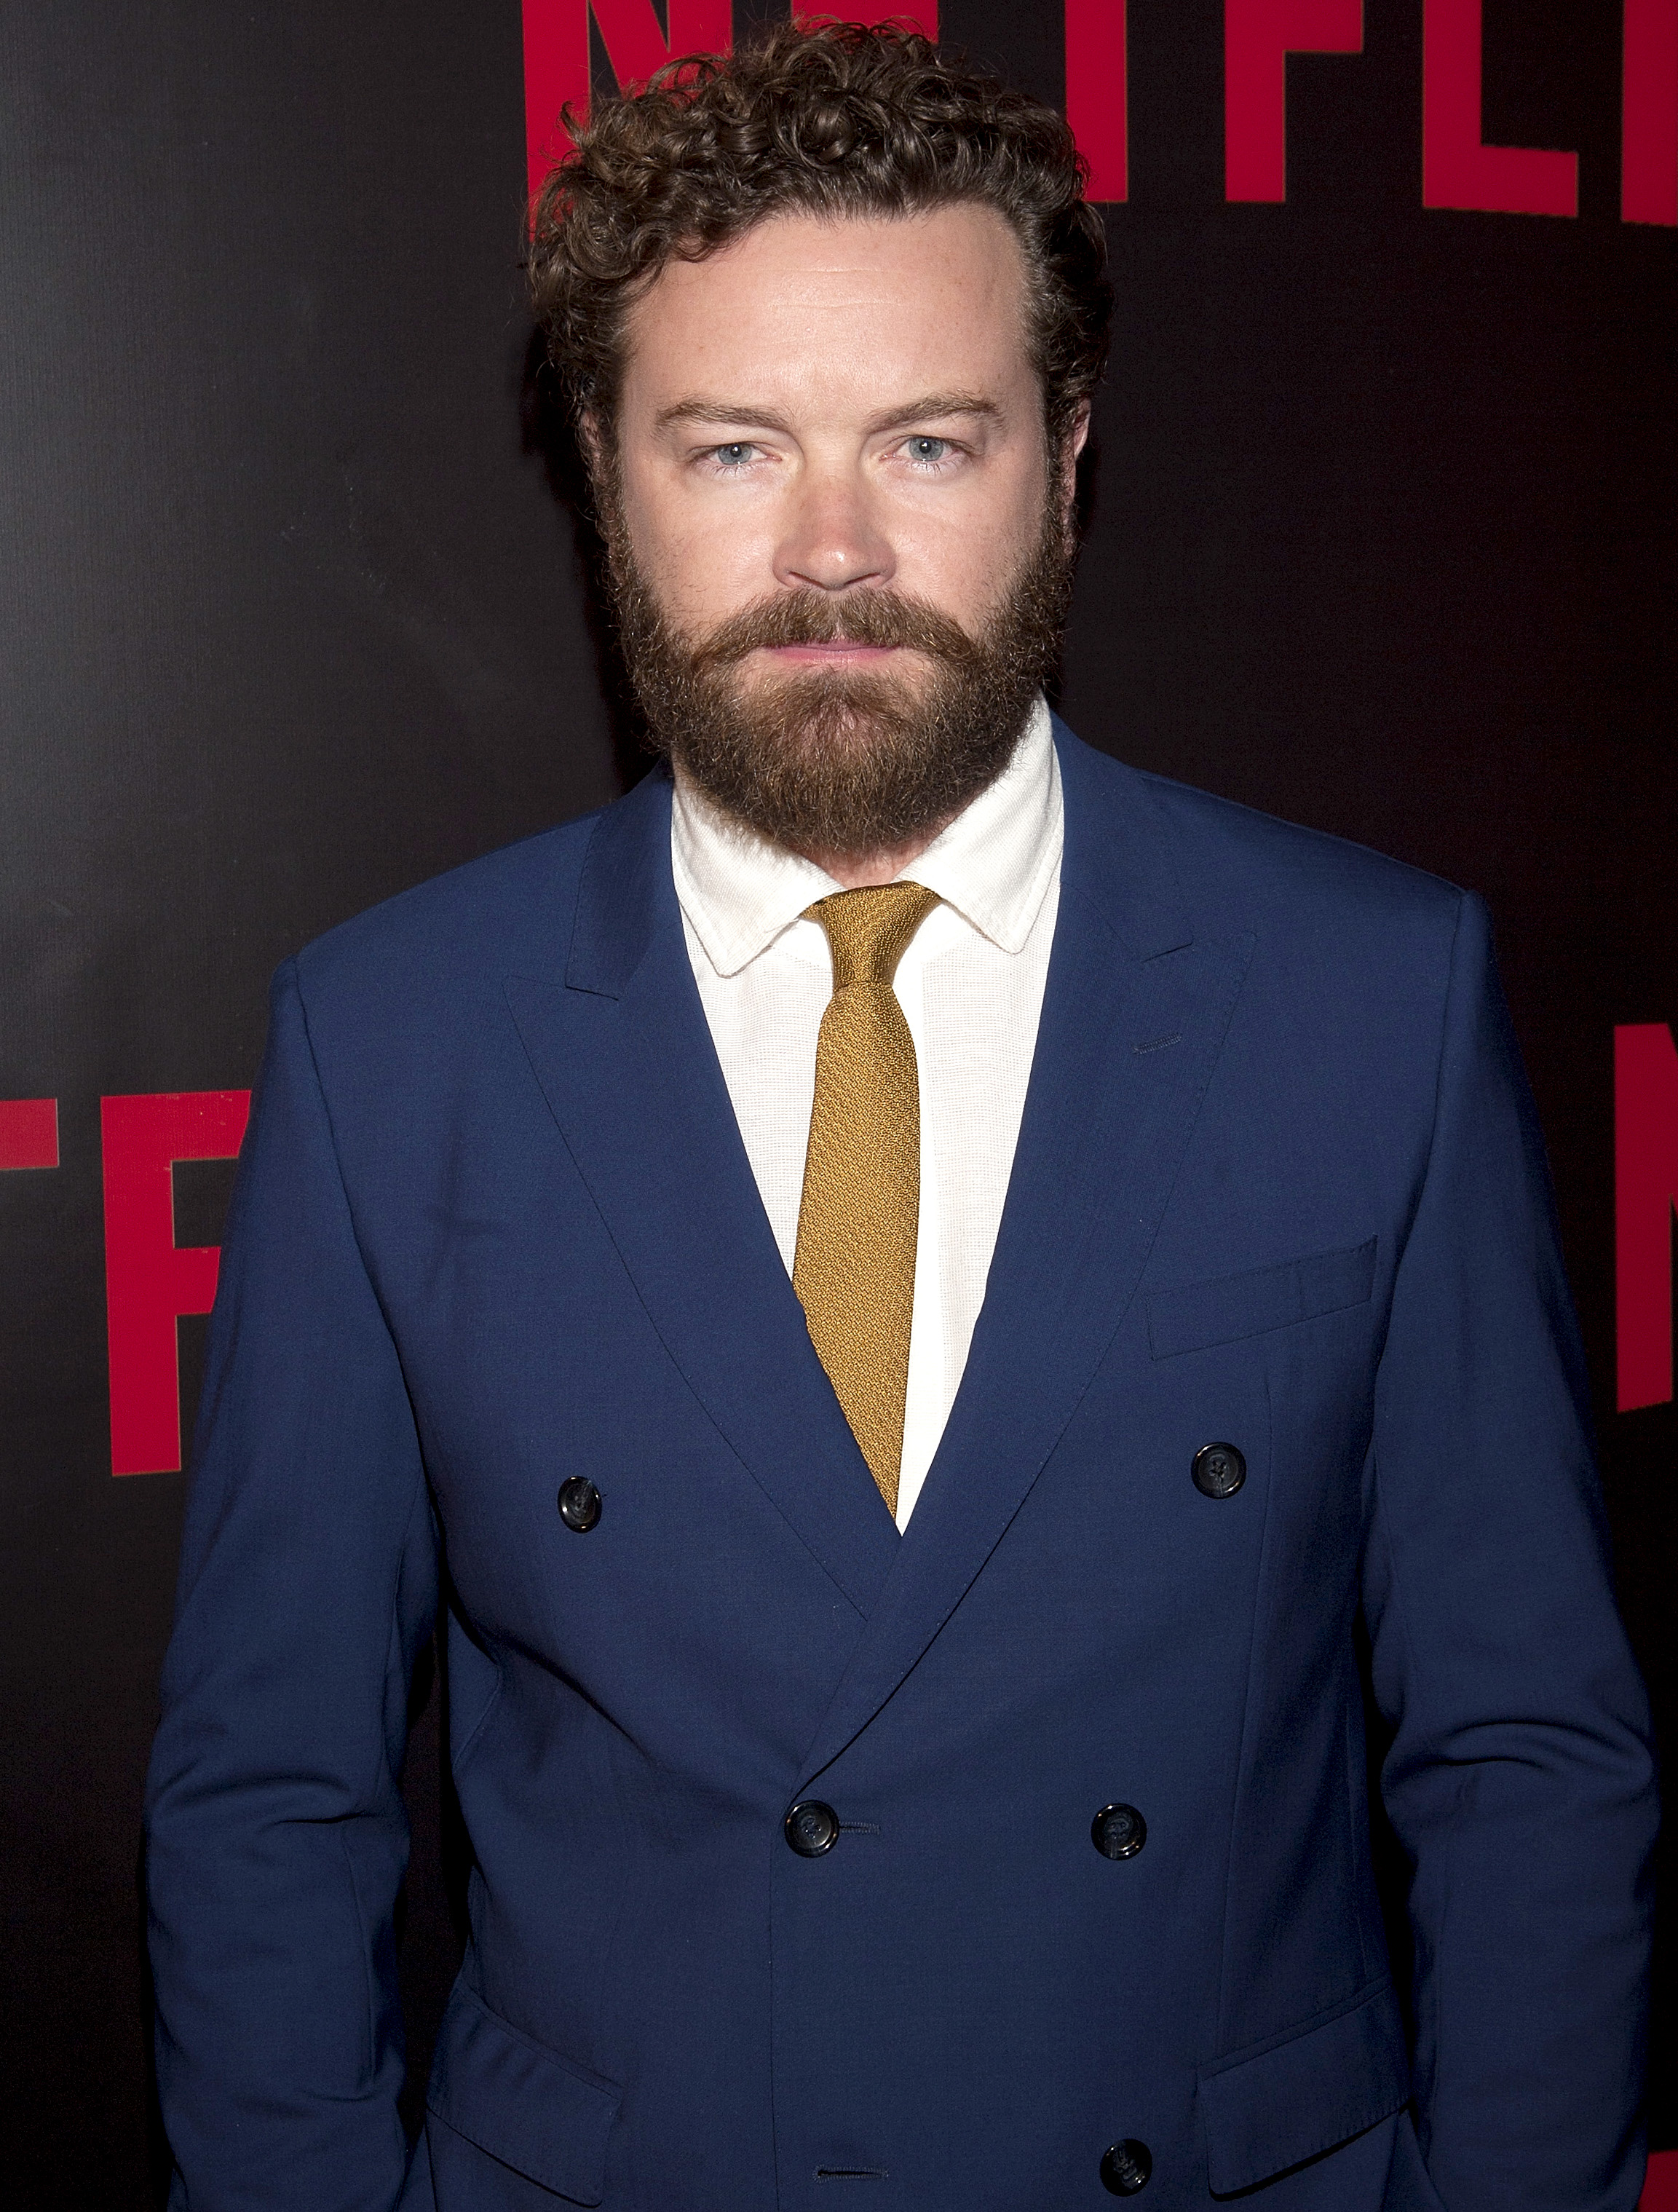 Danny Masterson wearing a blue suit.